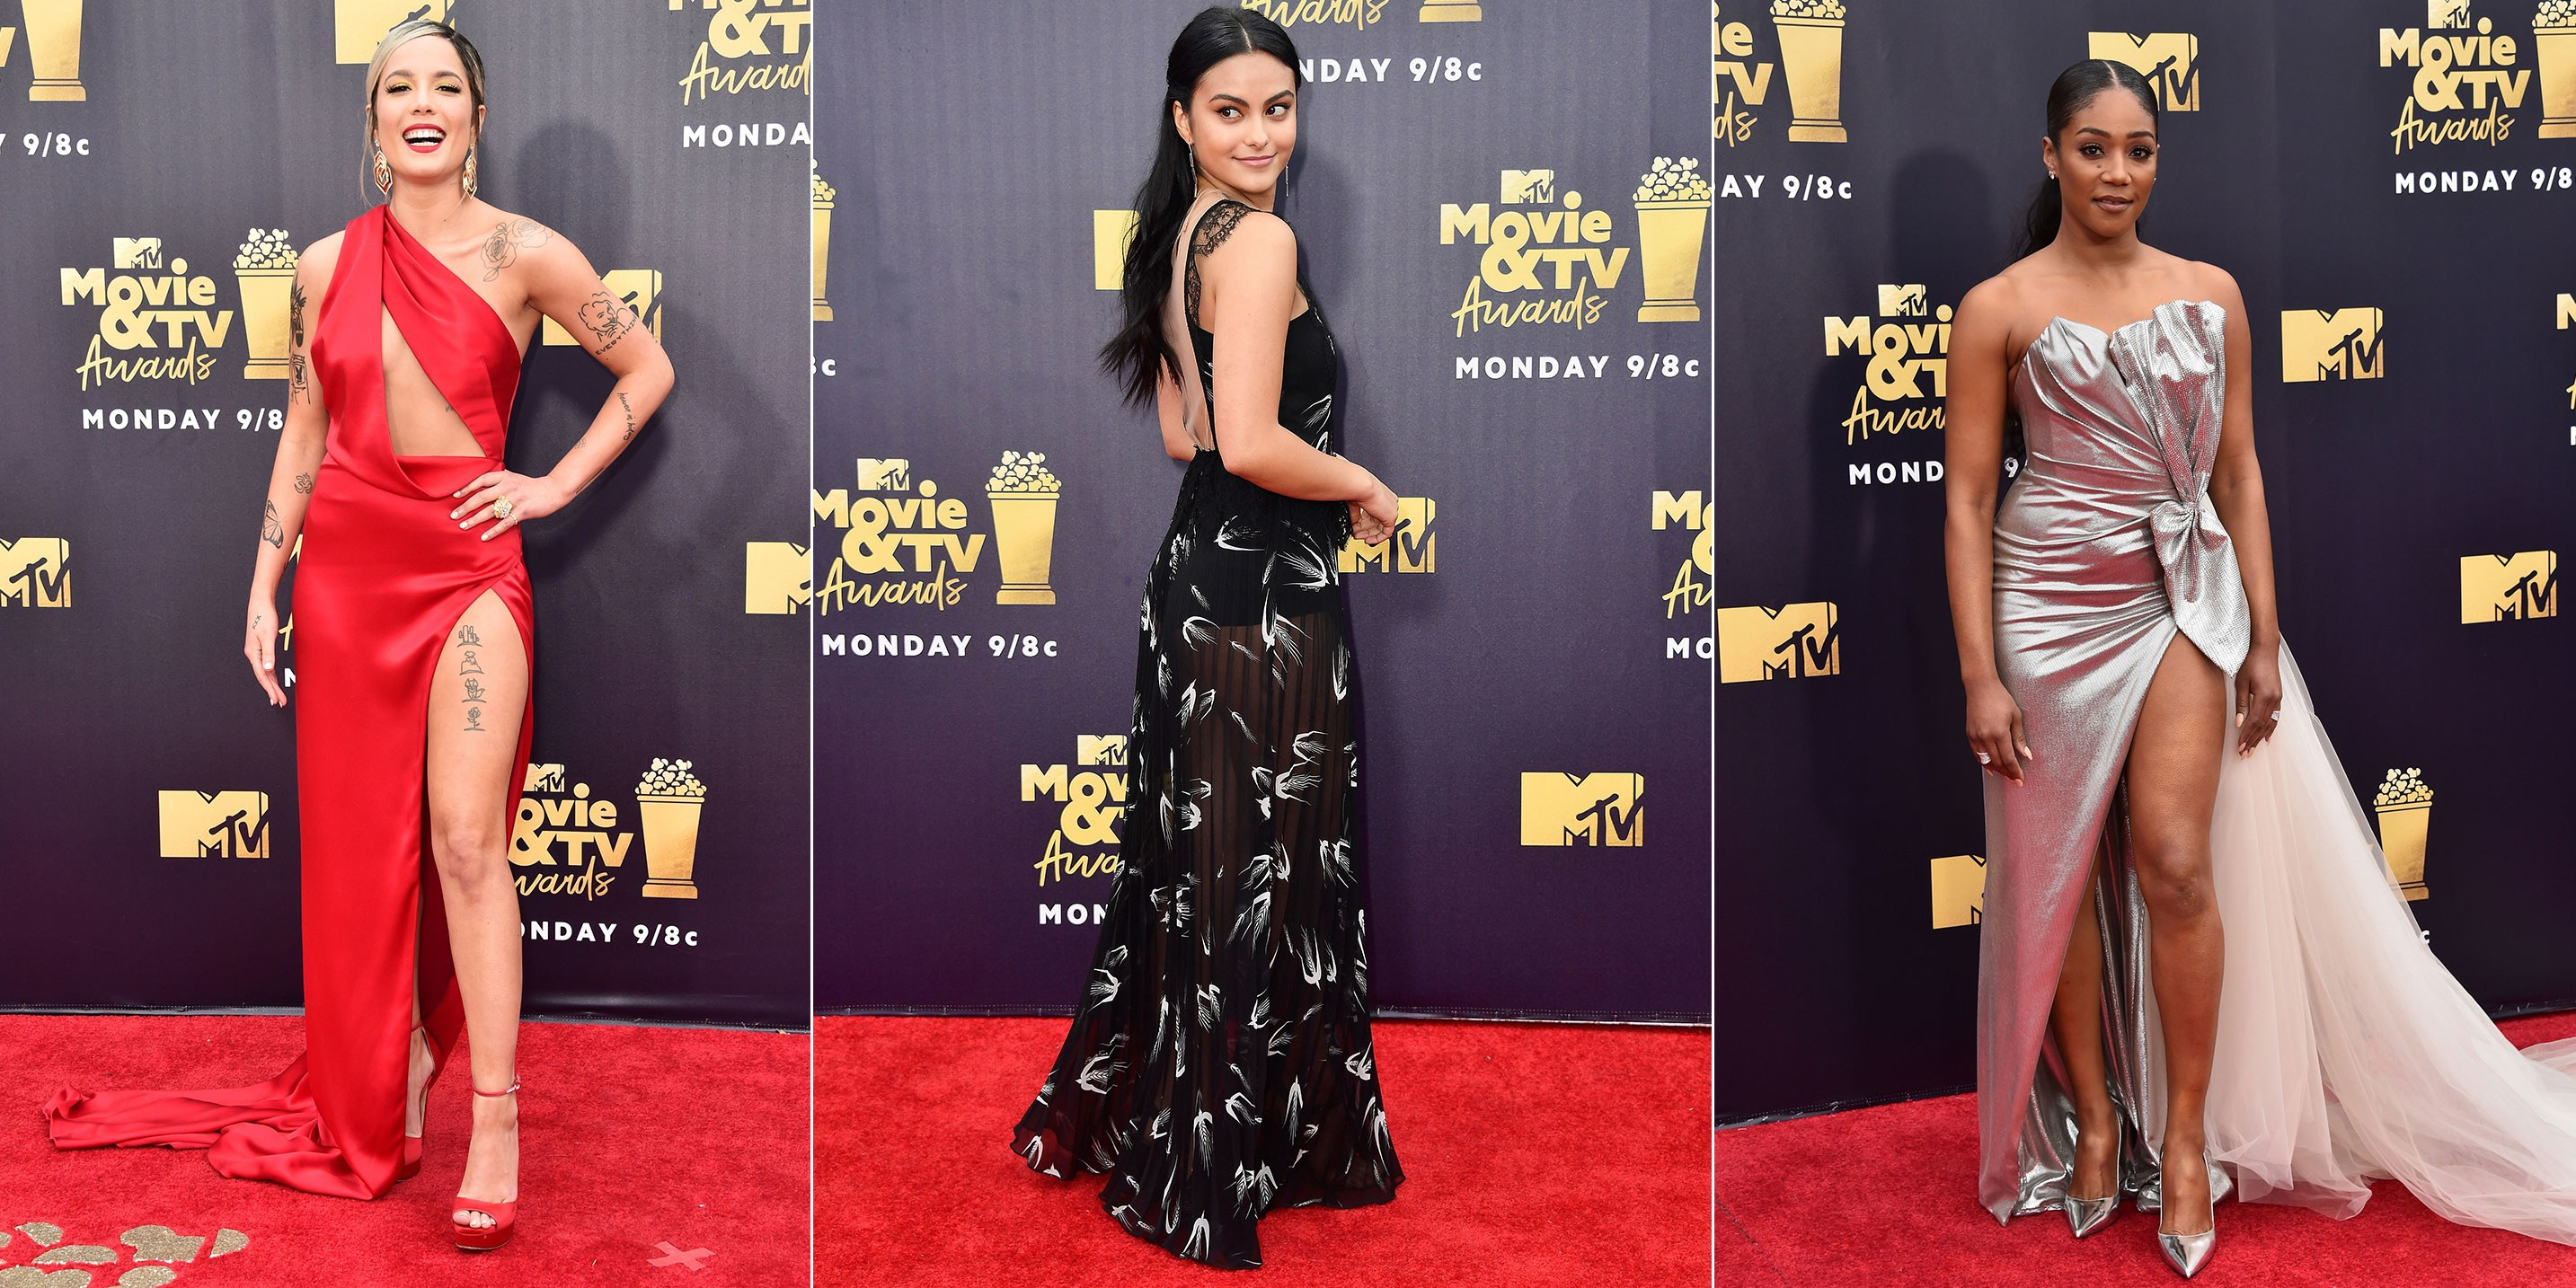 Mtv Movie Tv Awards 2018 Red Carpet Best Looks Fort Mcmurray